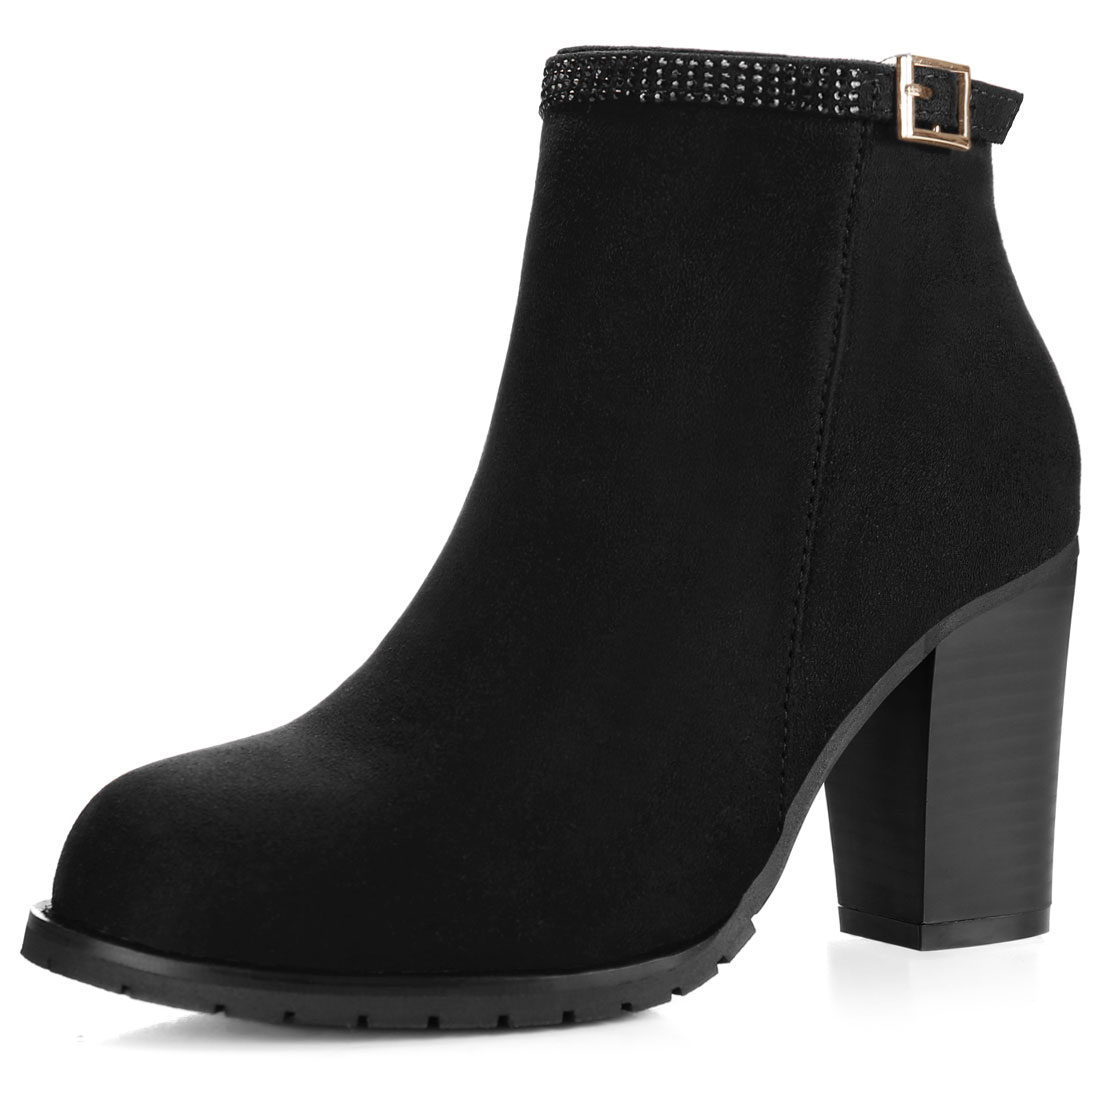 Women Rhinestone Strap Chunky High Heel Ankle Booties Black US 6